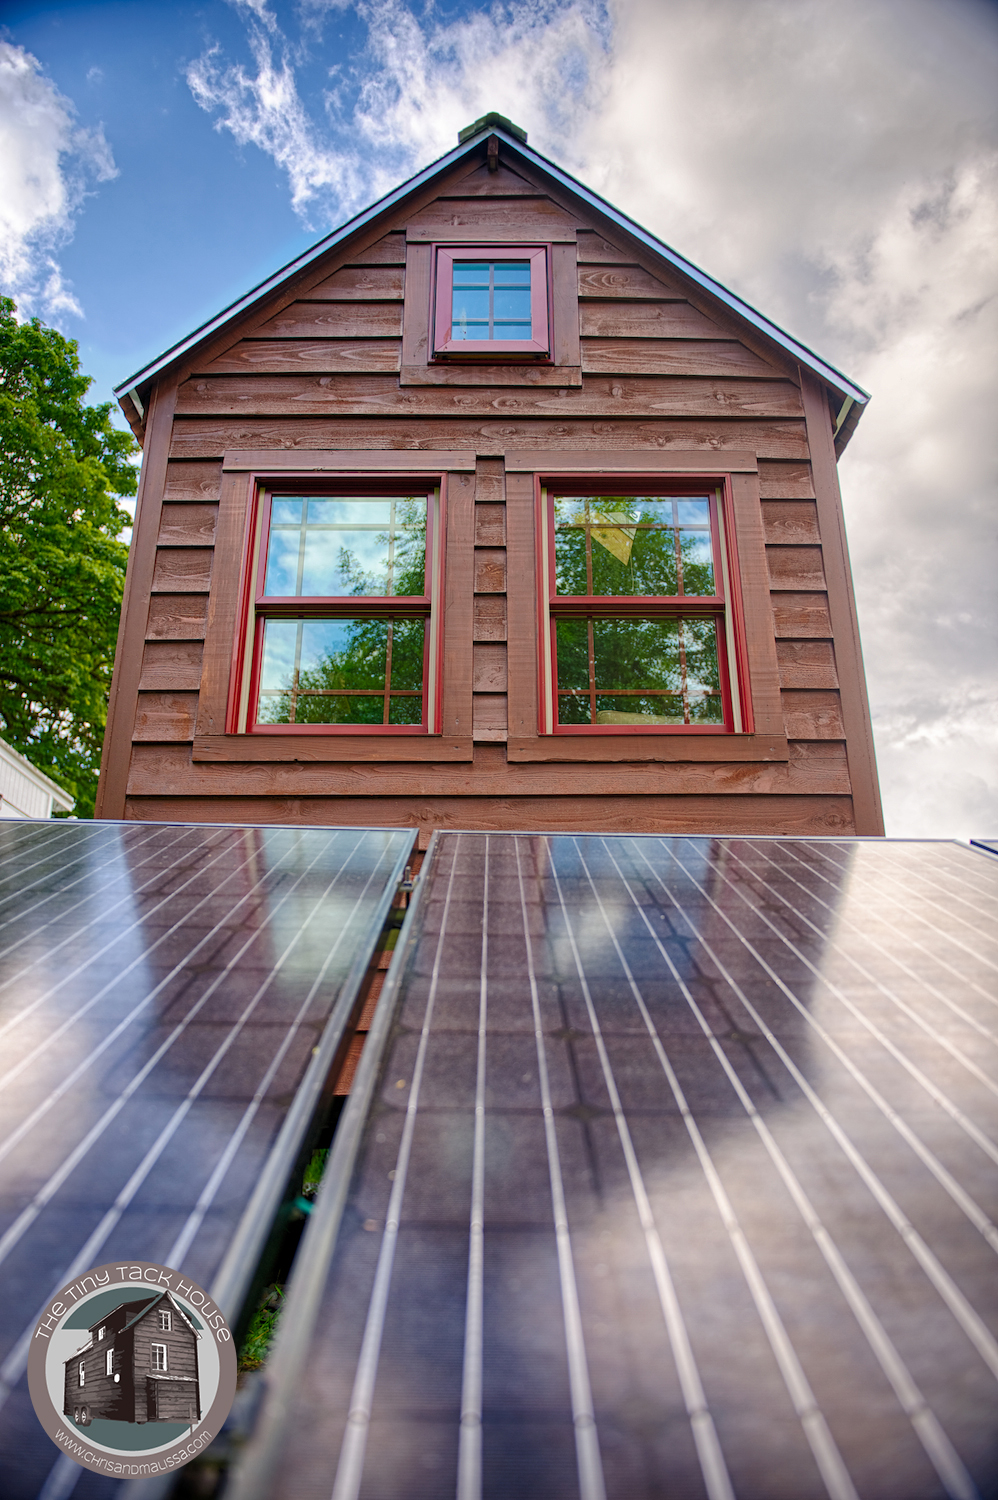 More about Tiny House Solar Power The Tiny Tack House